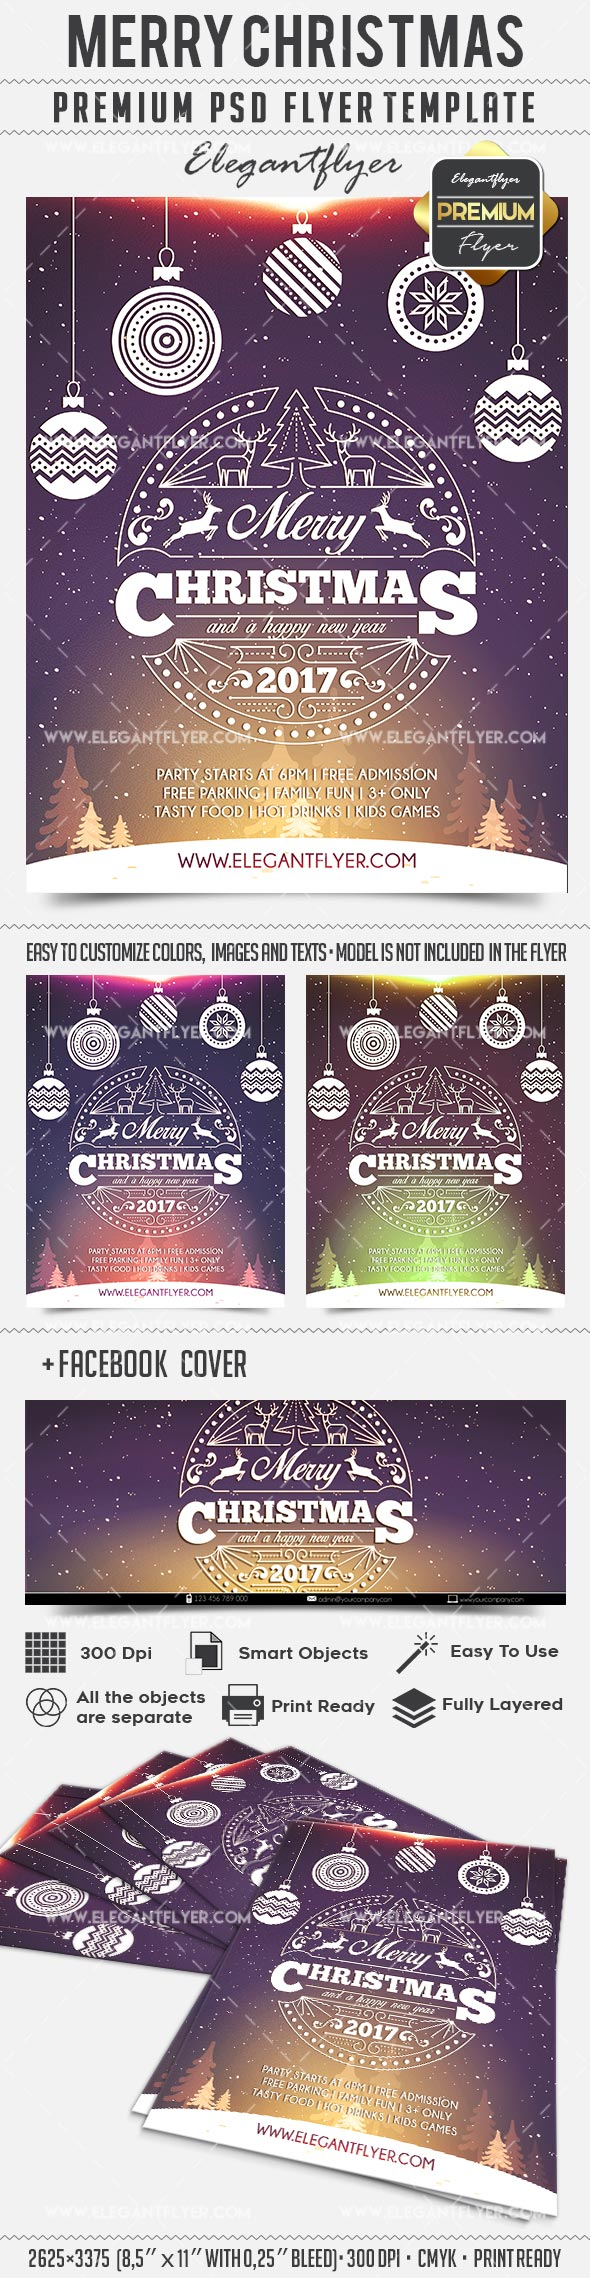 Poster Merry Christmas PSD Template